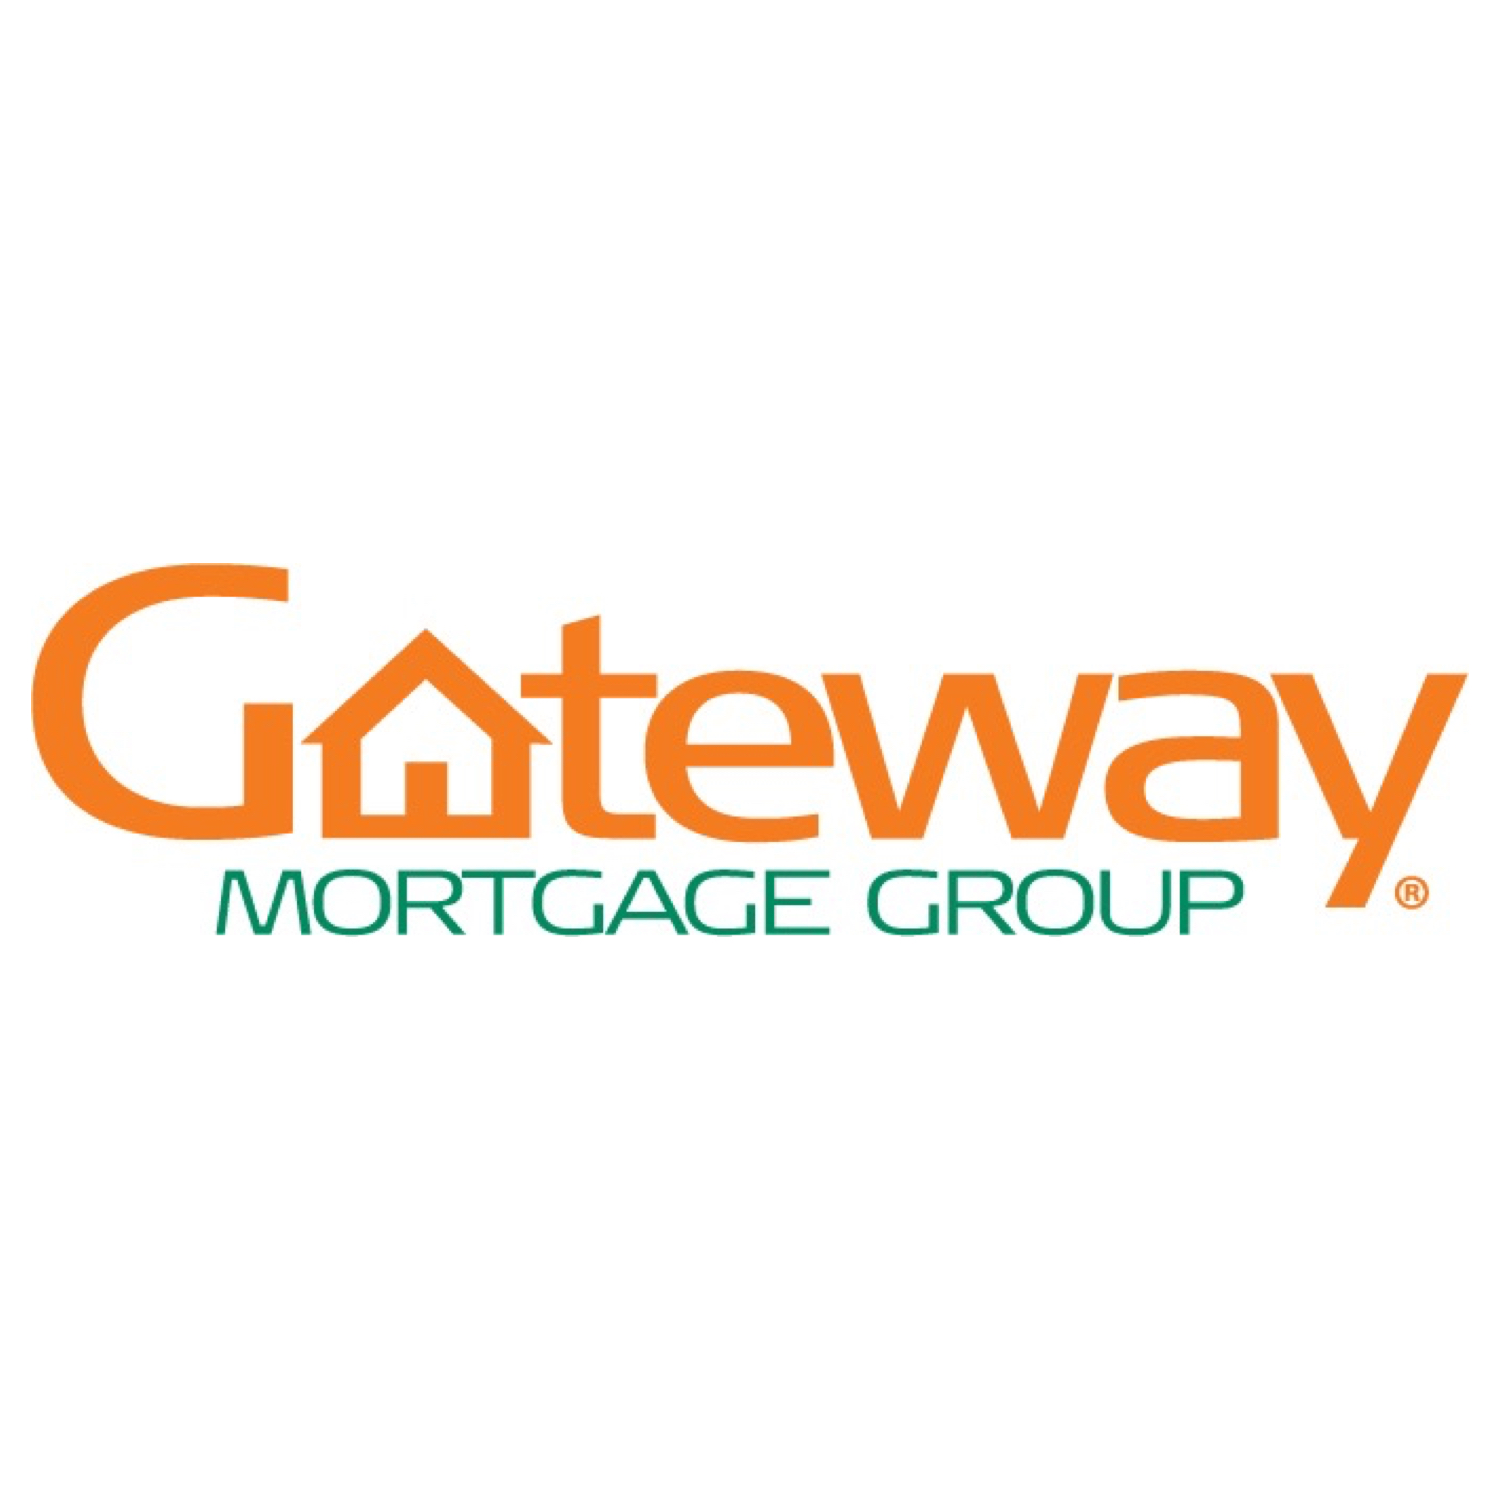 Gateway Mortgage Group   As one of the largest privately held mortgage lenders in the country, Gateway Mortgage Group delivers value throughout every stage of a mortgage loan. From competitive pricing and robust product options to streamlined underwriting and reliable loan closings, our customers enjoy a unique combination of service, innovation and flexibility second to none.